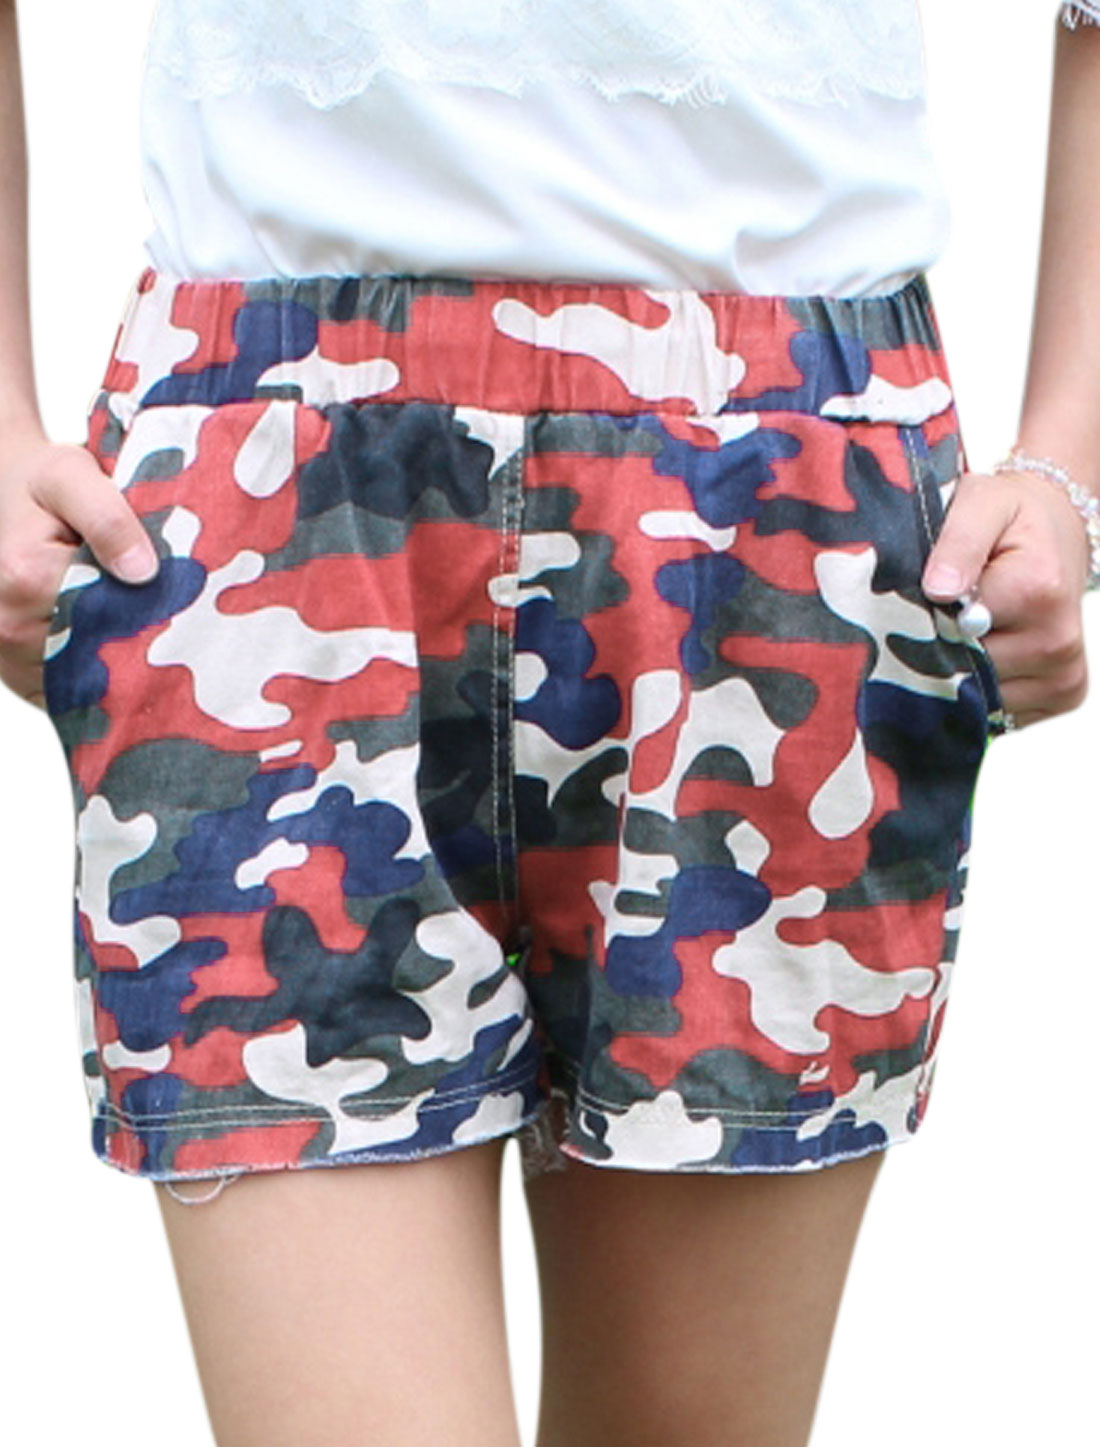 Lady Fashion Stretchy Waist Camouflage Pattern Shorts Beige Red XS